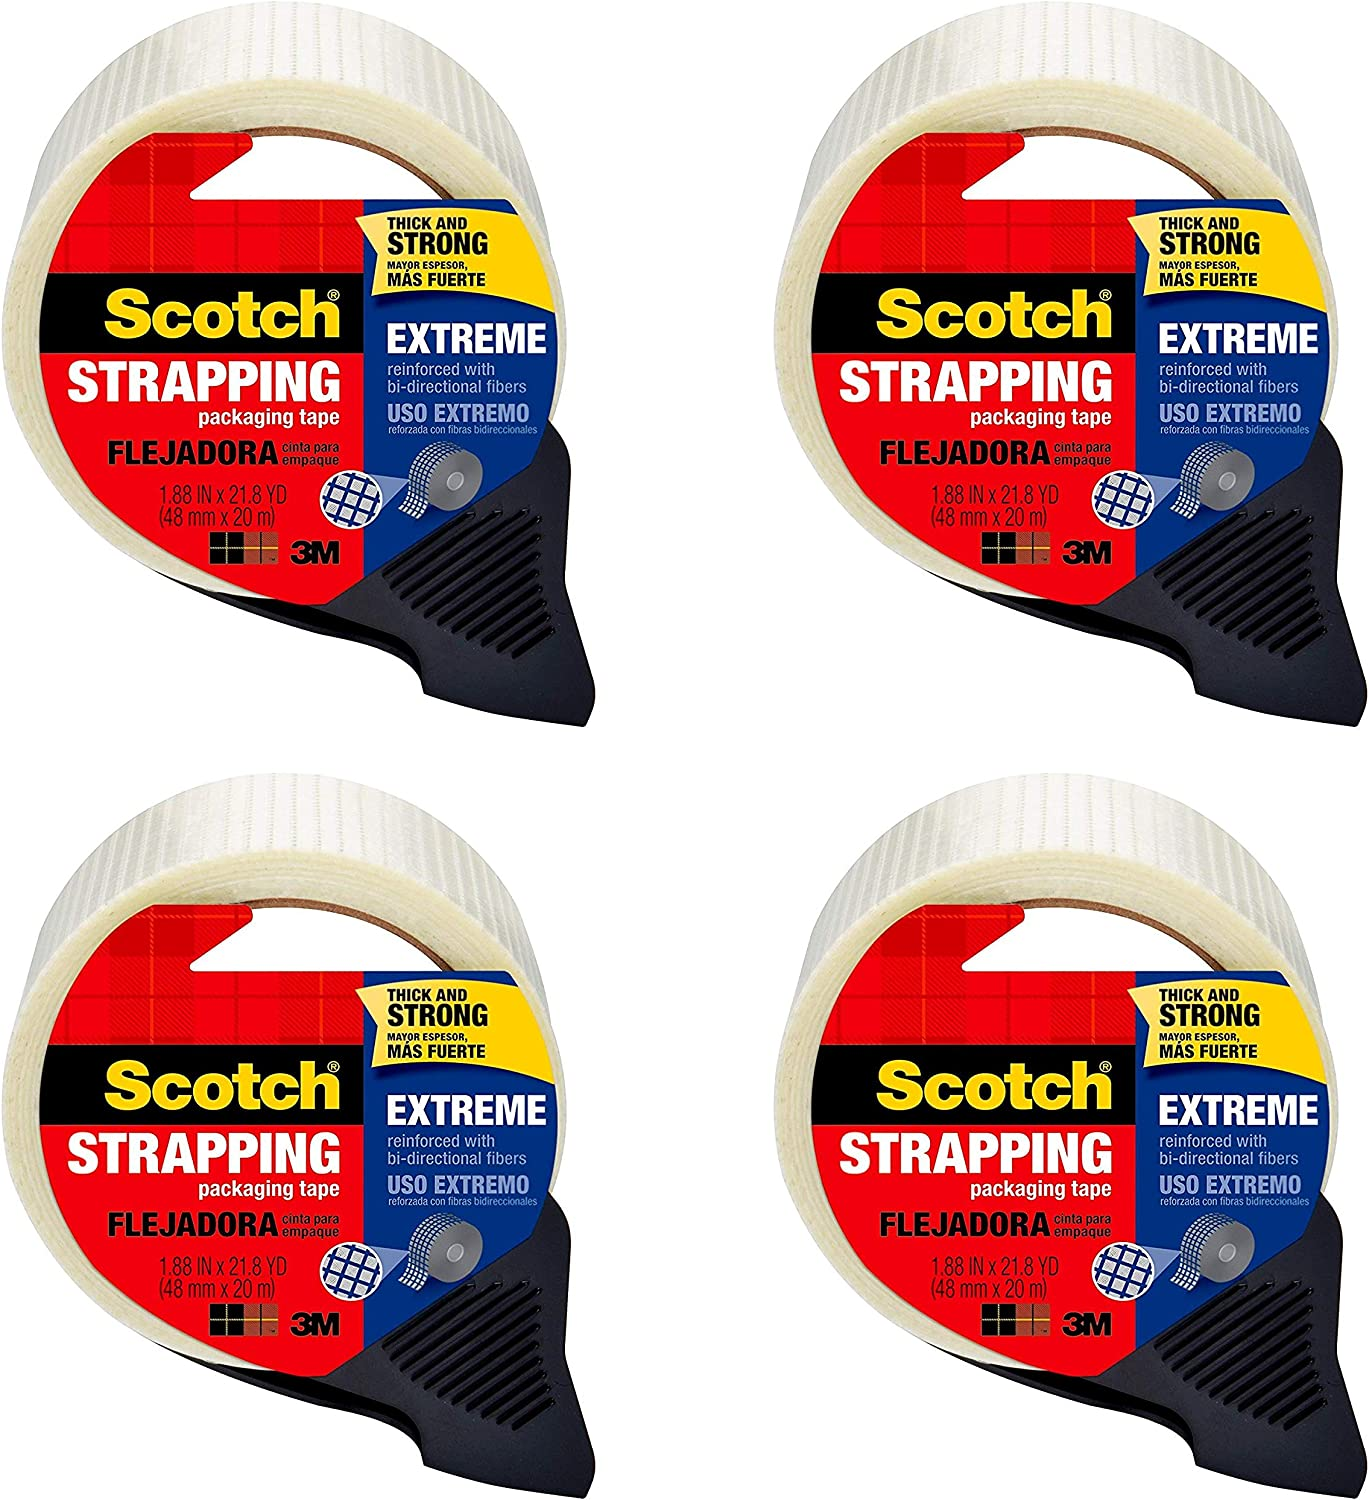 Scotch Extreme Tape 8959-RD 6-PACK 1.9 Inches x 21 Yards